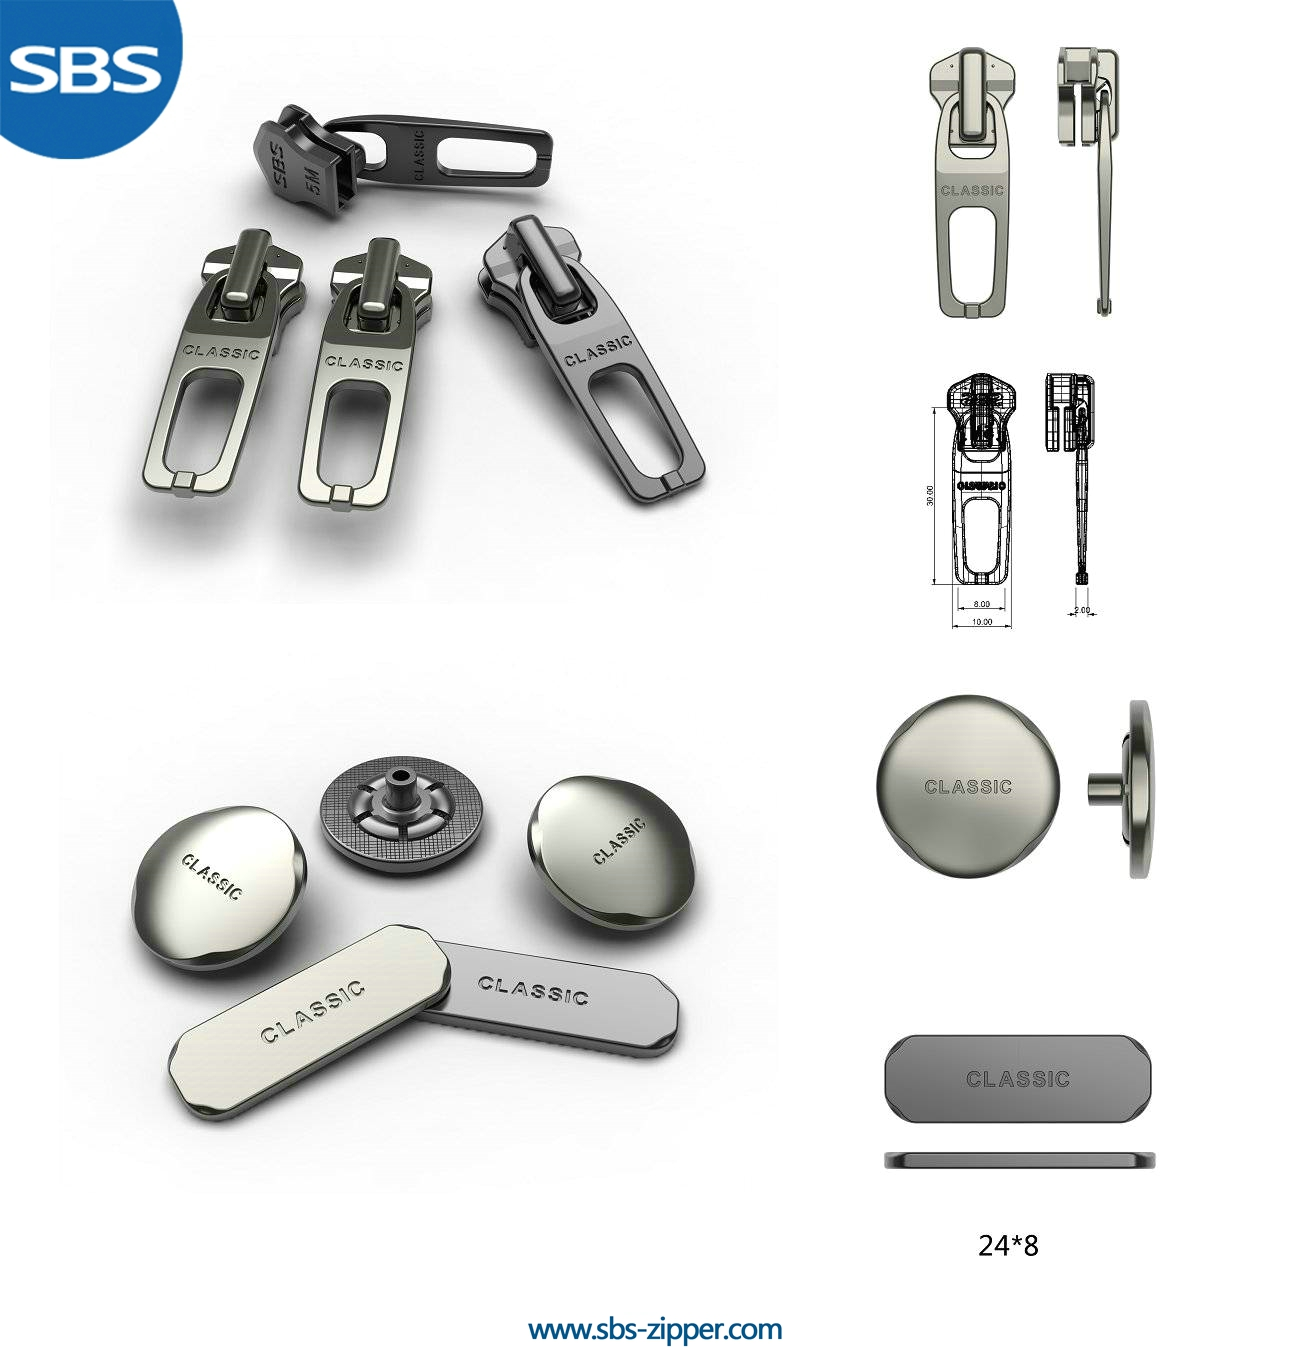 Customized Zipper Pulls Provider 16SMC010 | SBS Zipper